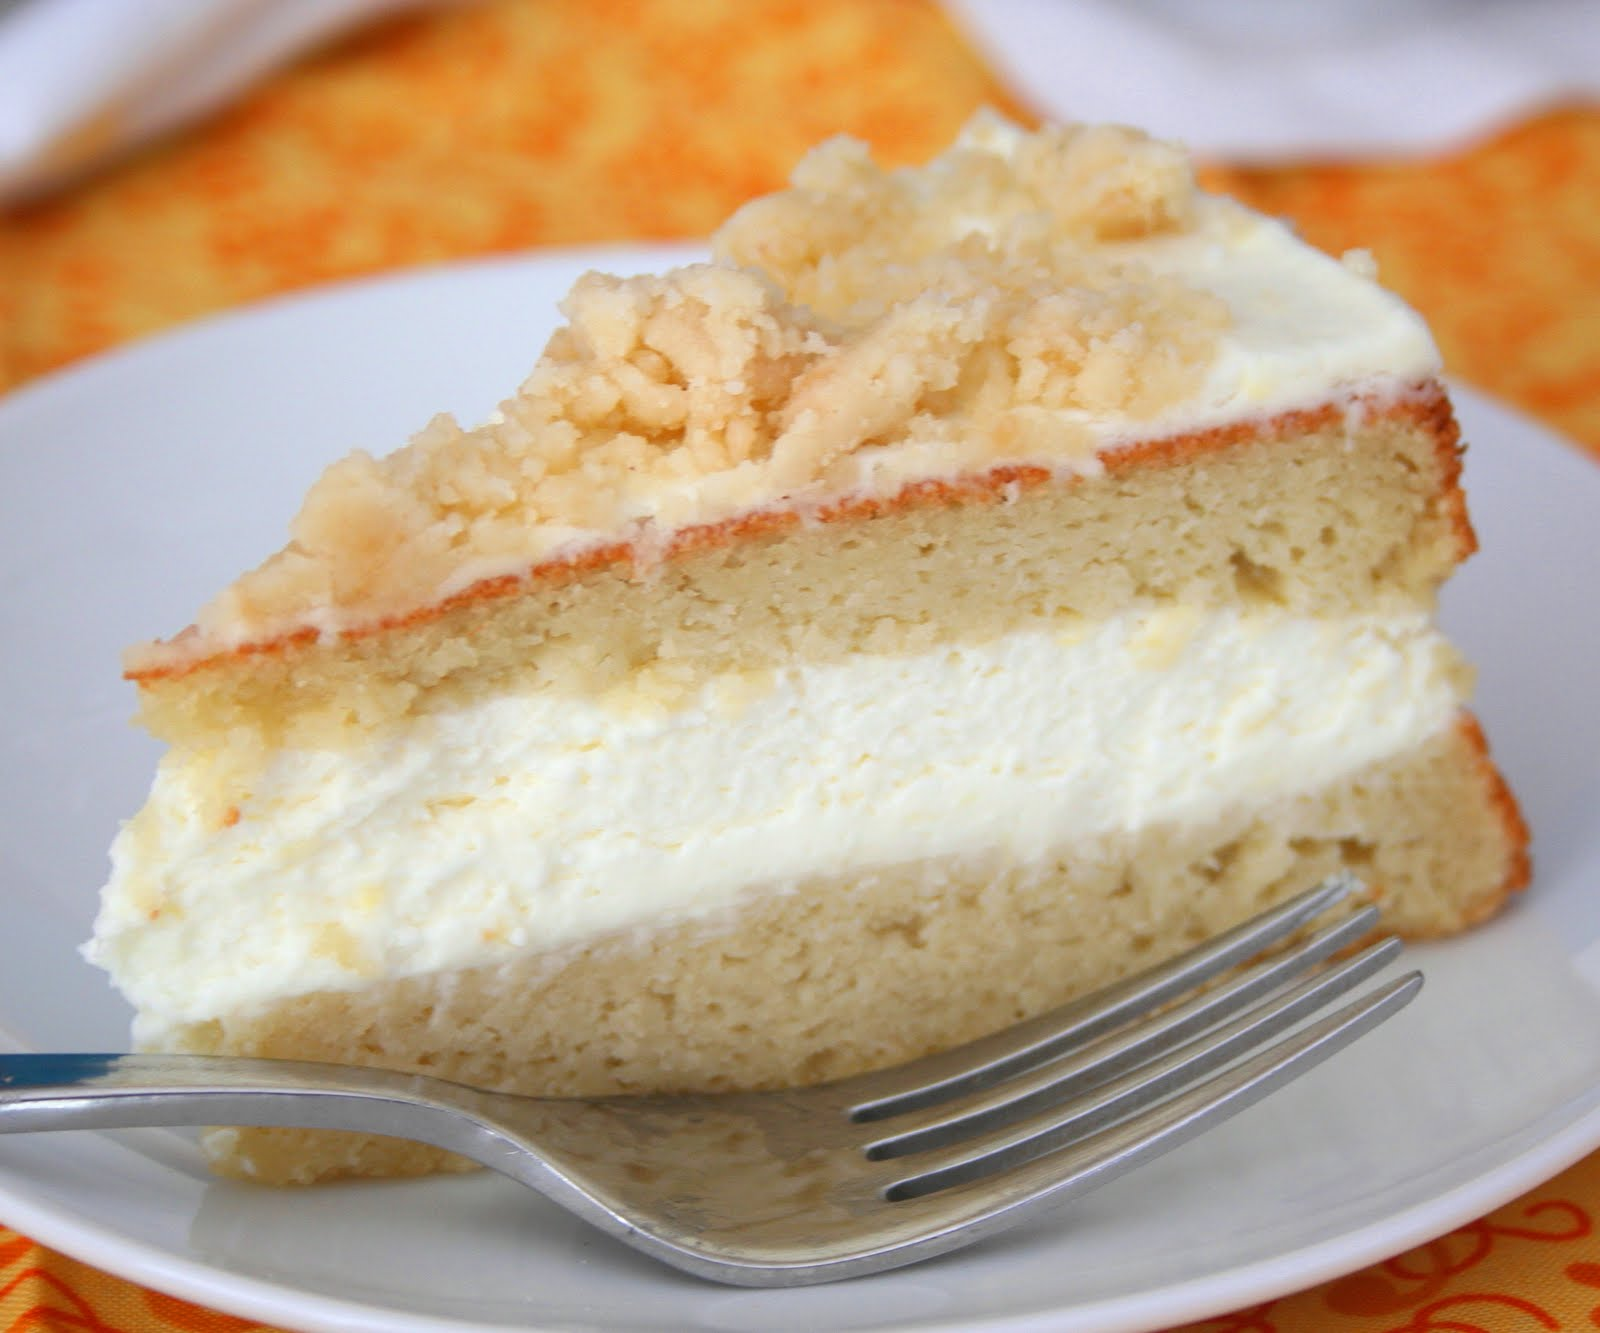 Menu For Olive Garden: Lemon Cream Cake (Low Carb And Gluten Free)